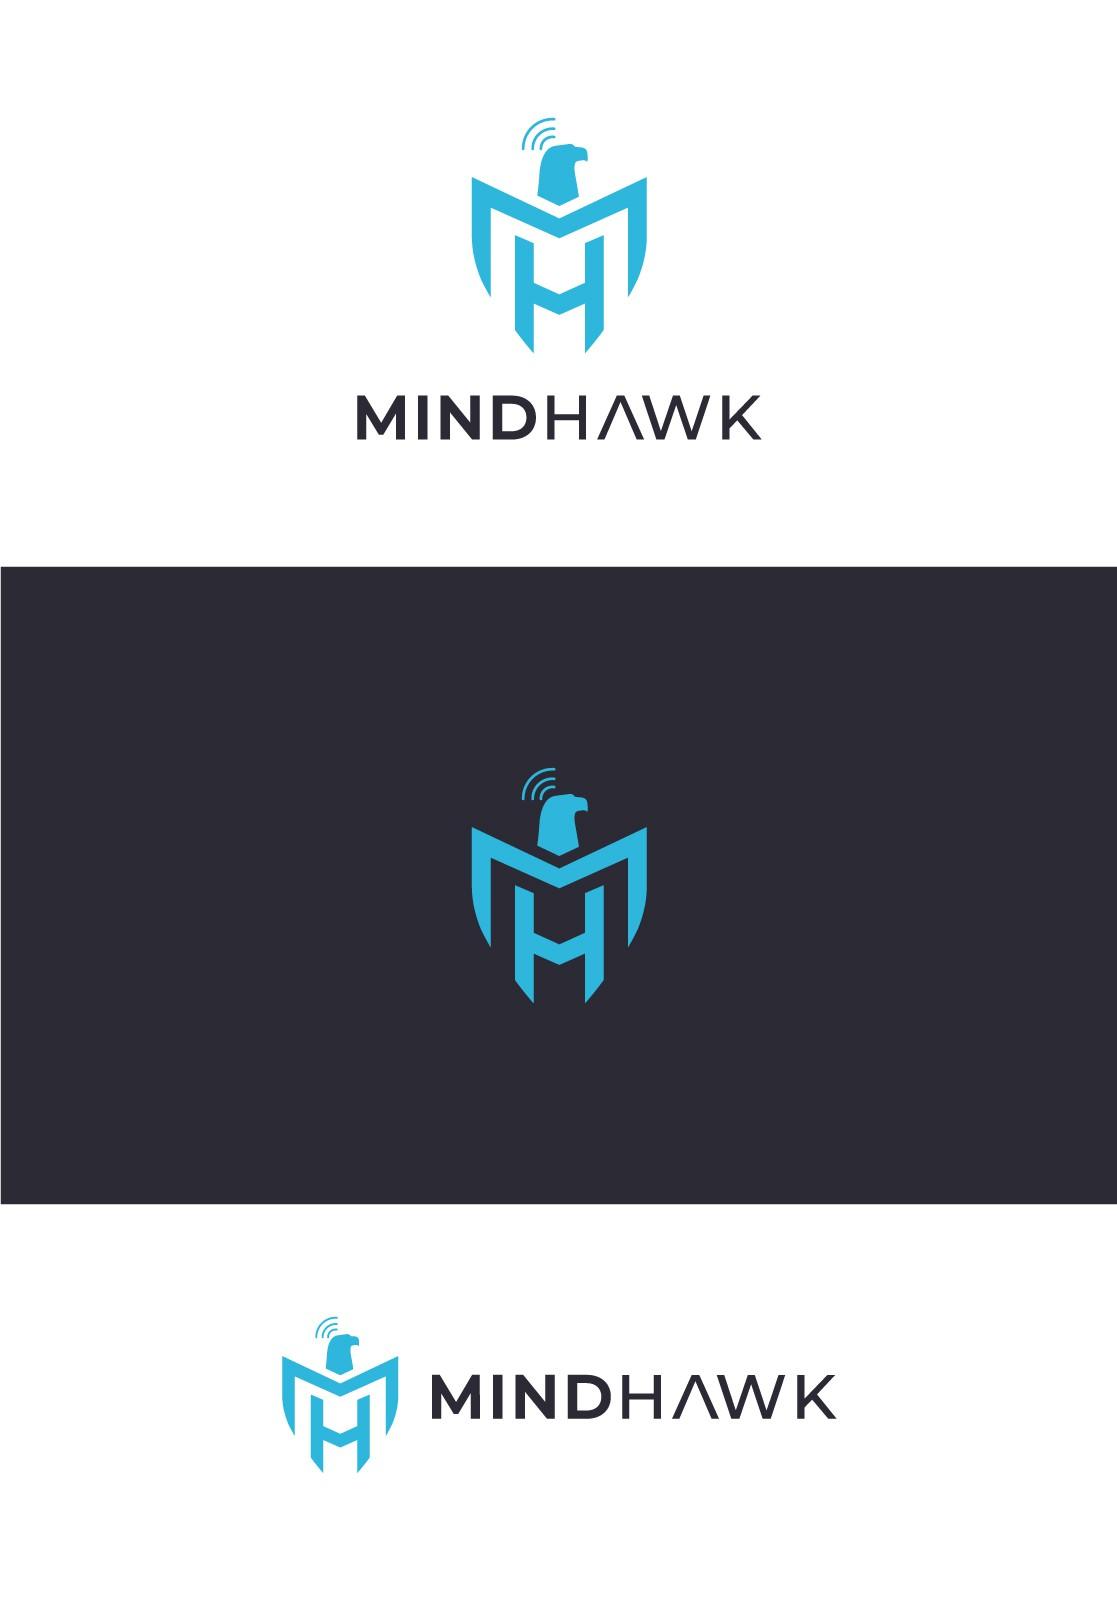 Looking for Balance: Create a strong yet mindful logo for MindHawk training